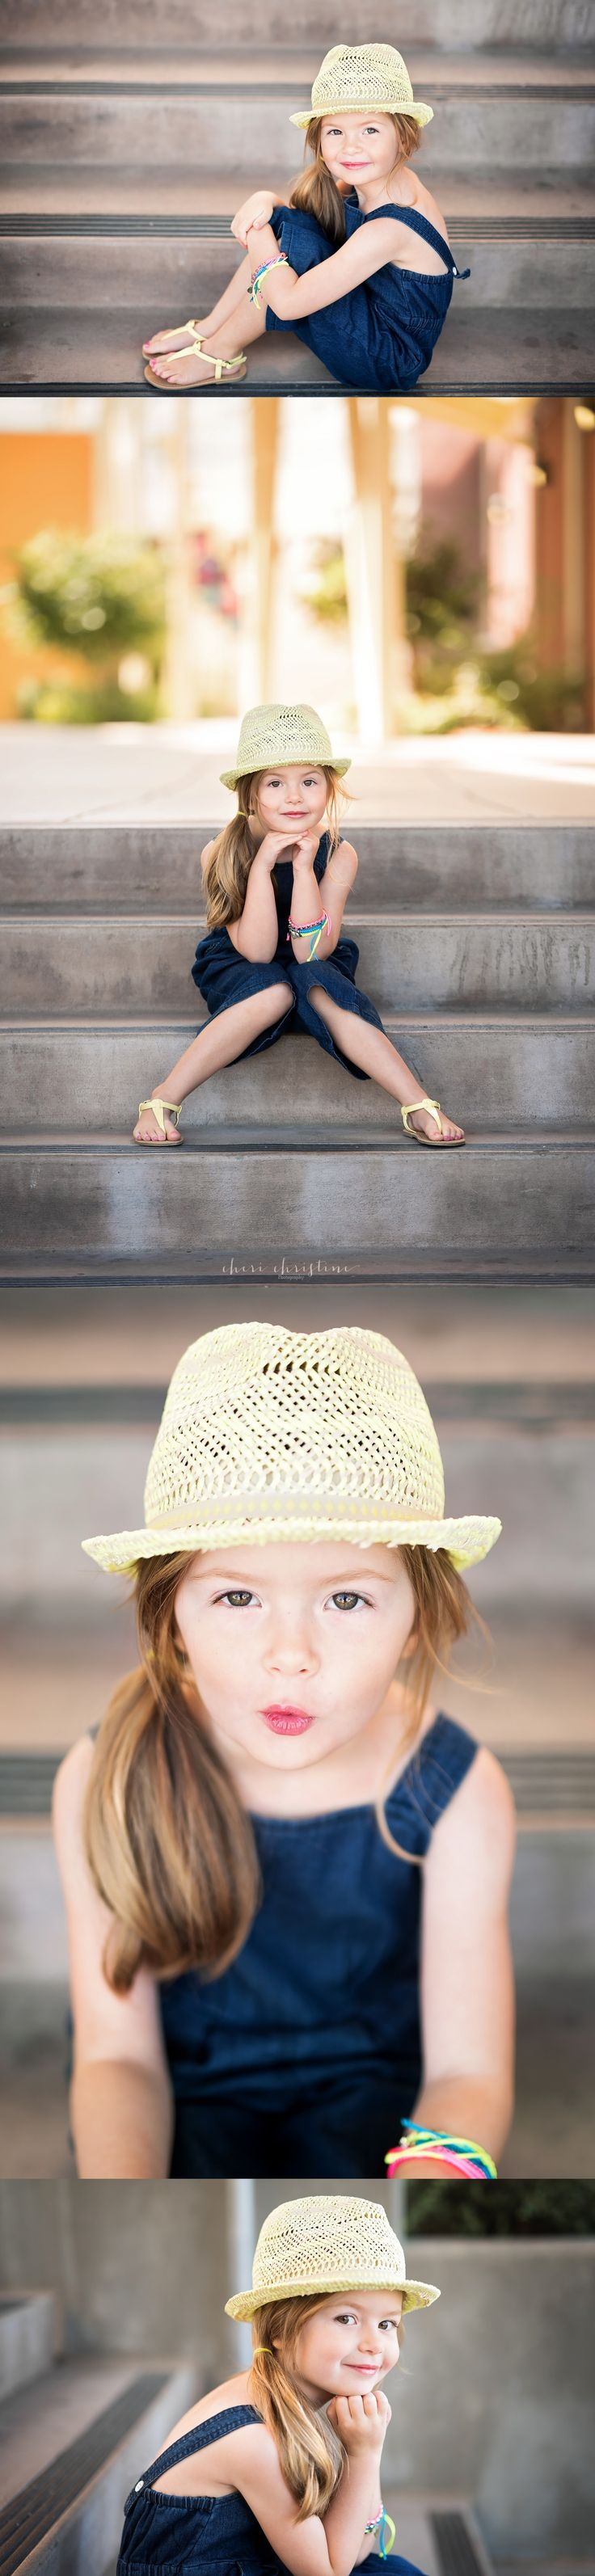 Urban photo shoot for 5 year old milestone | Cheri Christine Photography | Rocklin, CA